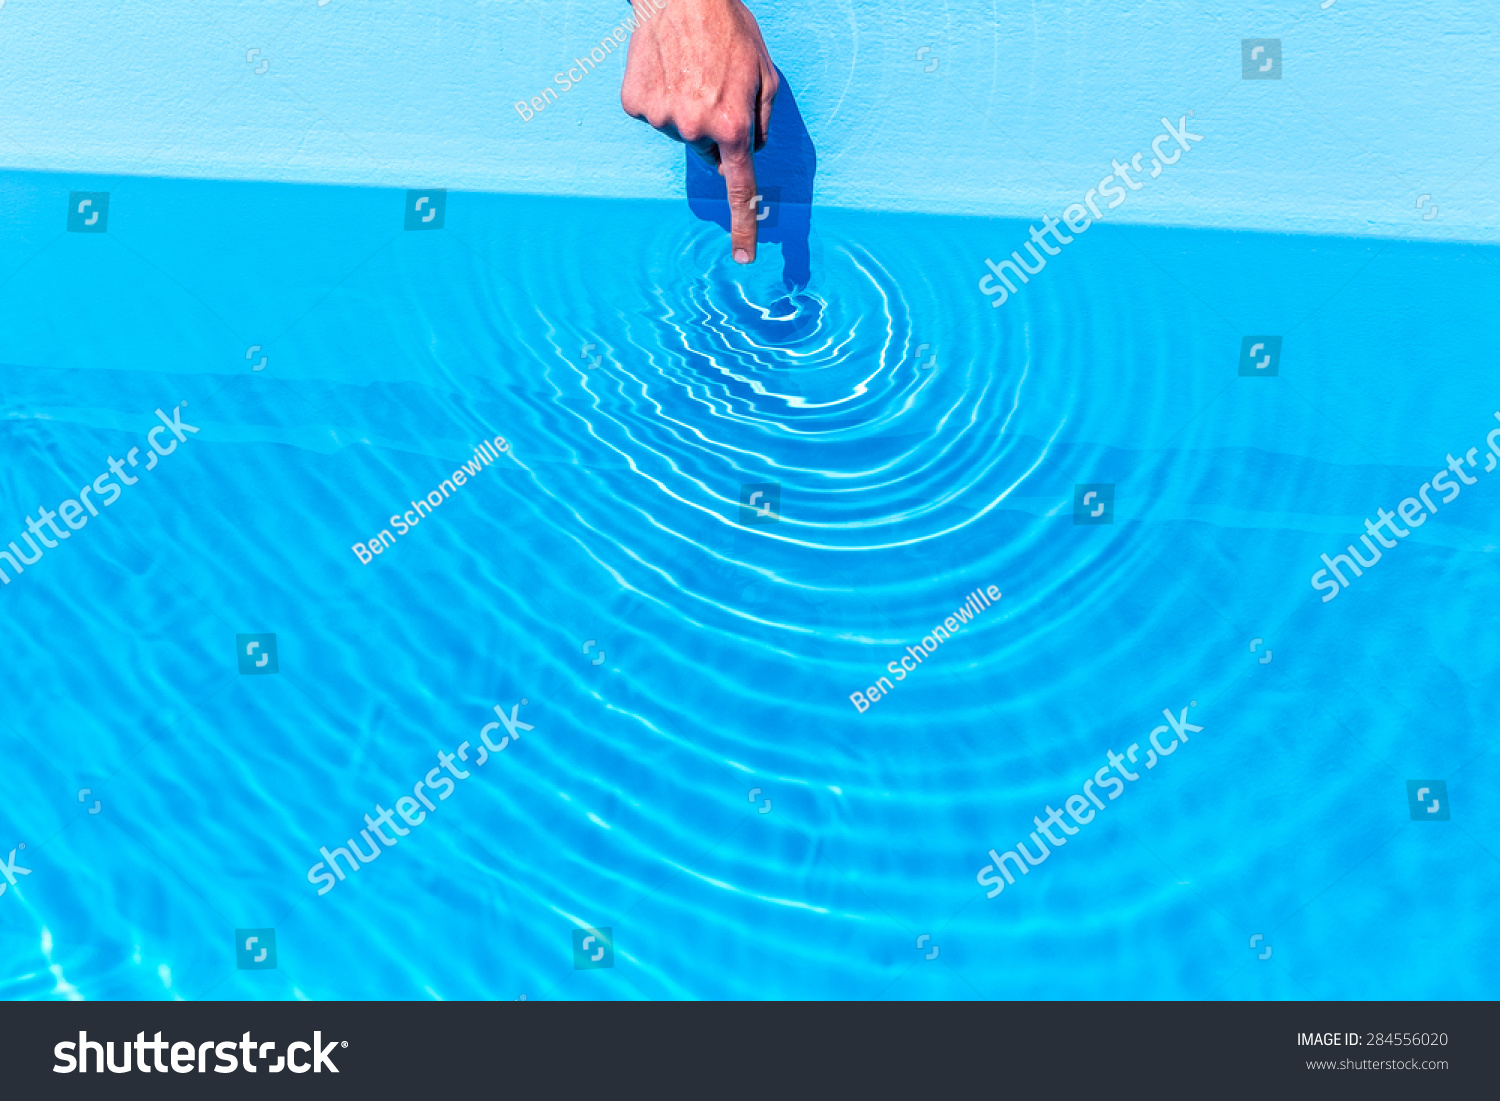 Forefinger Making Circular Waves In Water Of Blue Swimming Pool Stock Photo 284556020 Shutterstock